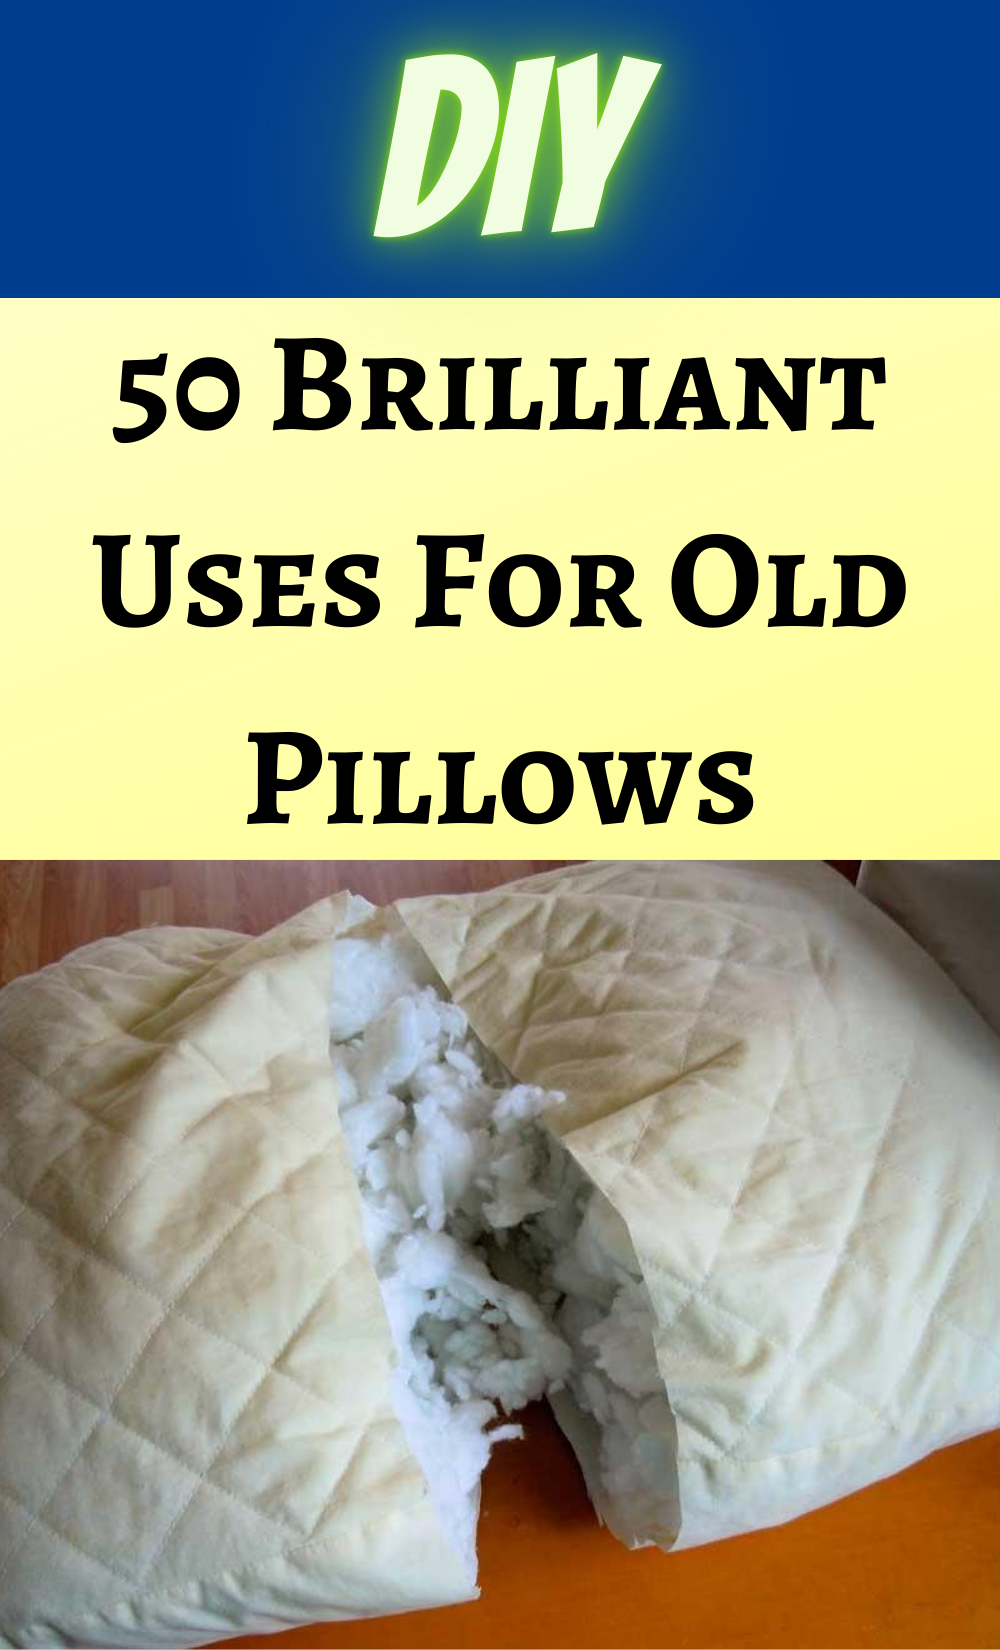 50 Brilliant Uses For Old Pillows